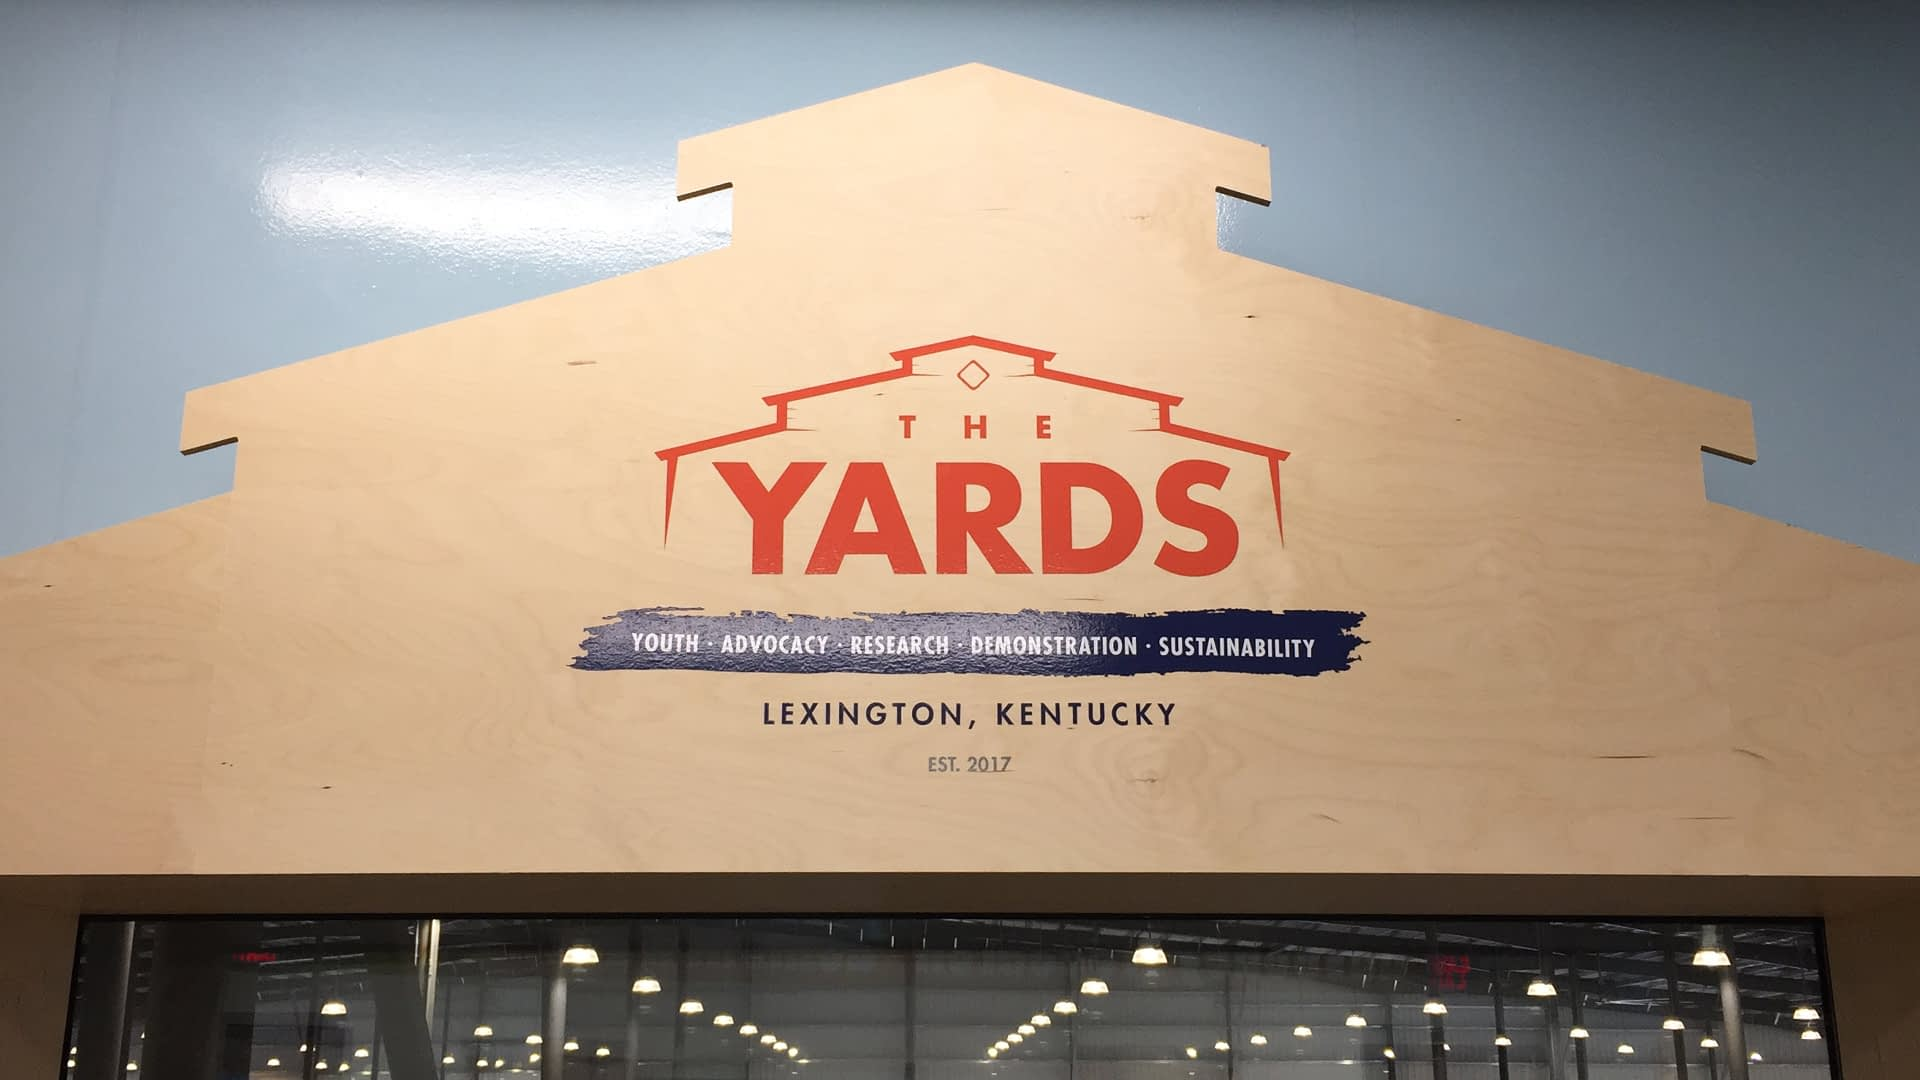 The Yards wood sign and graphic